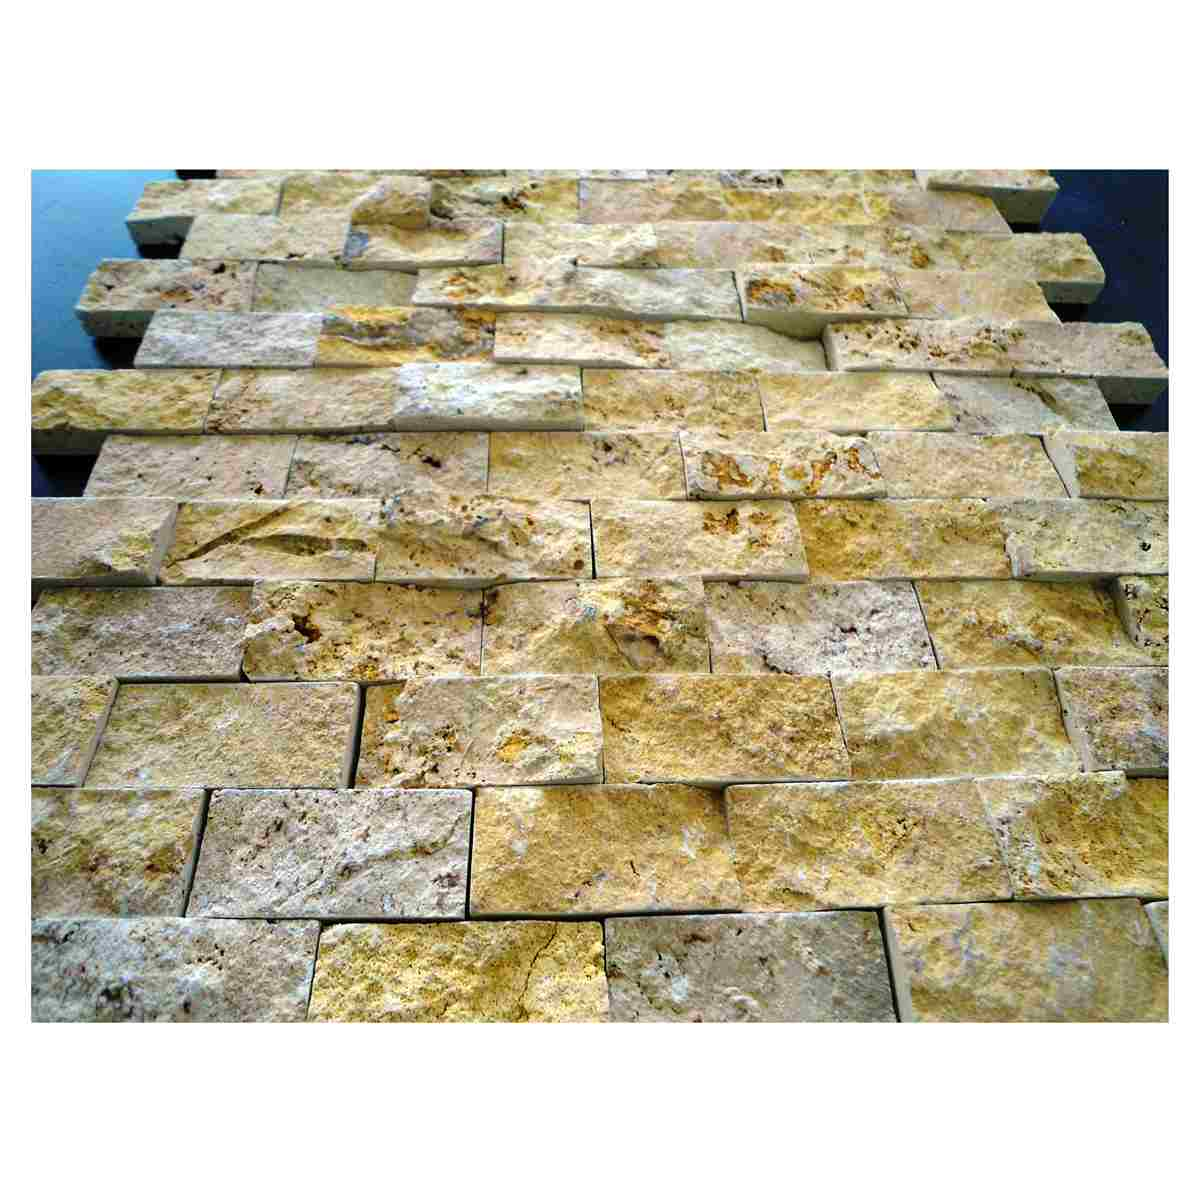 2,3x4,8 Split face golden yellow travertine mosaic